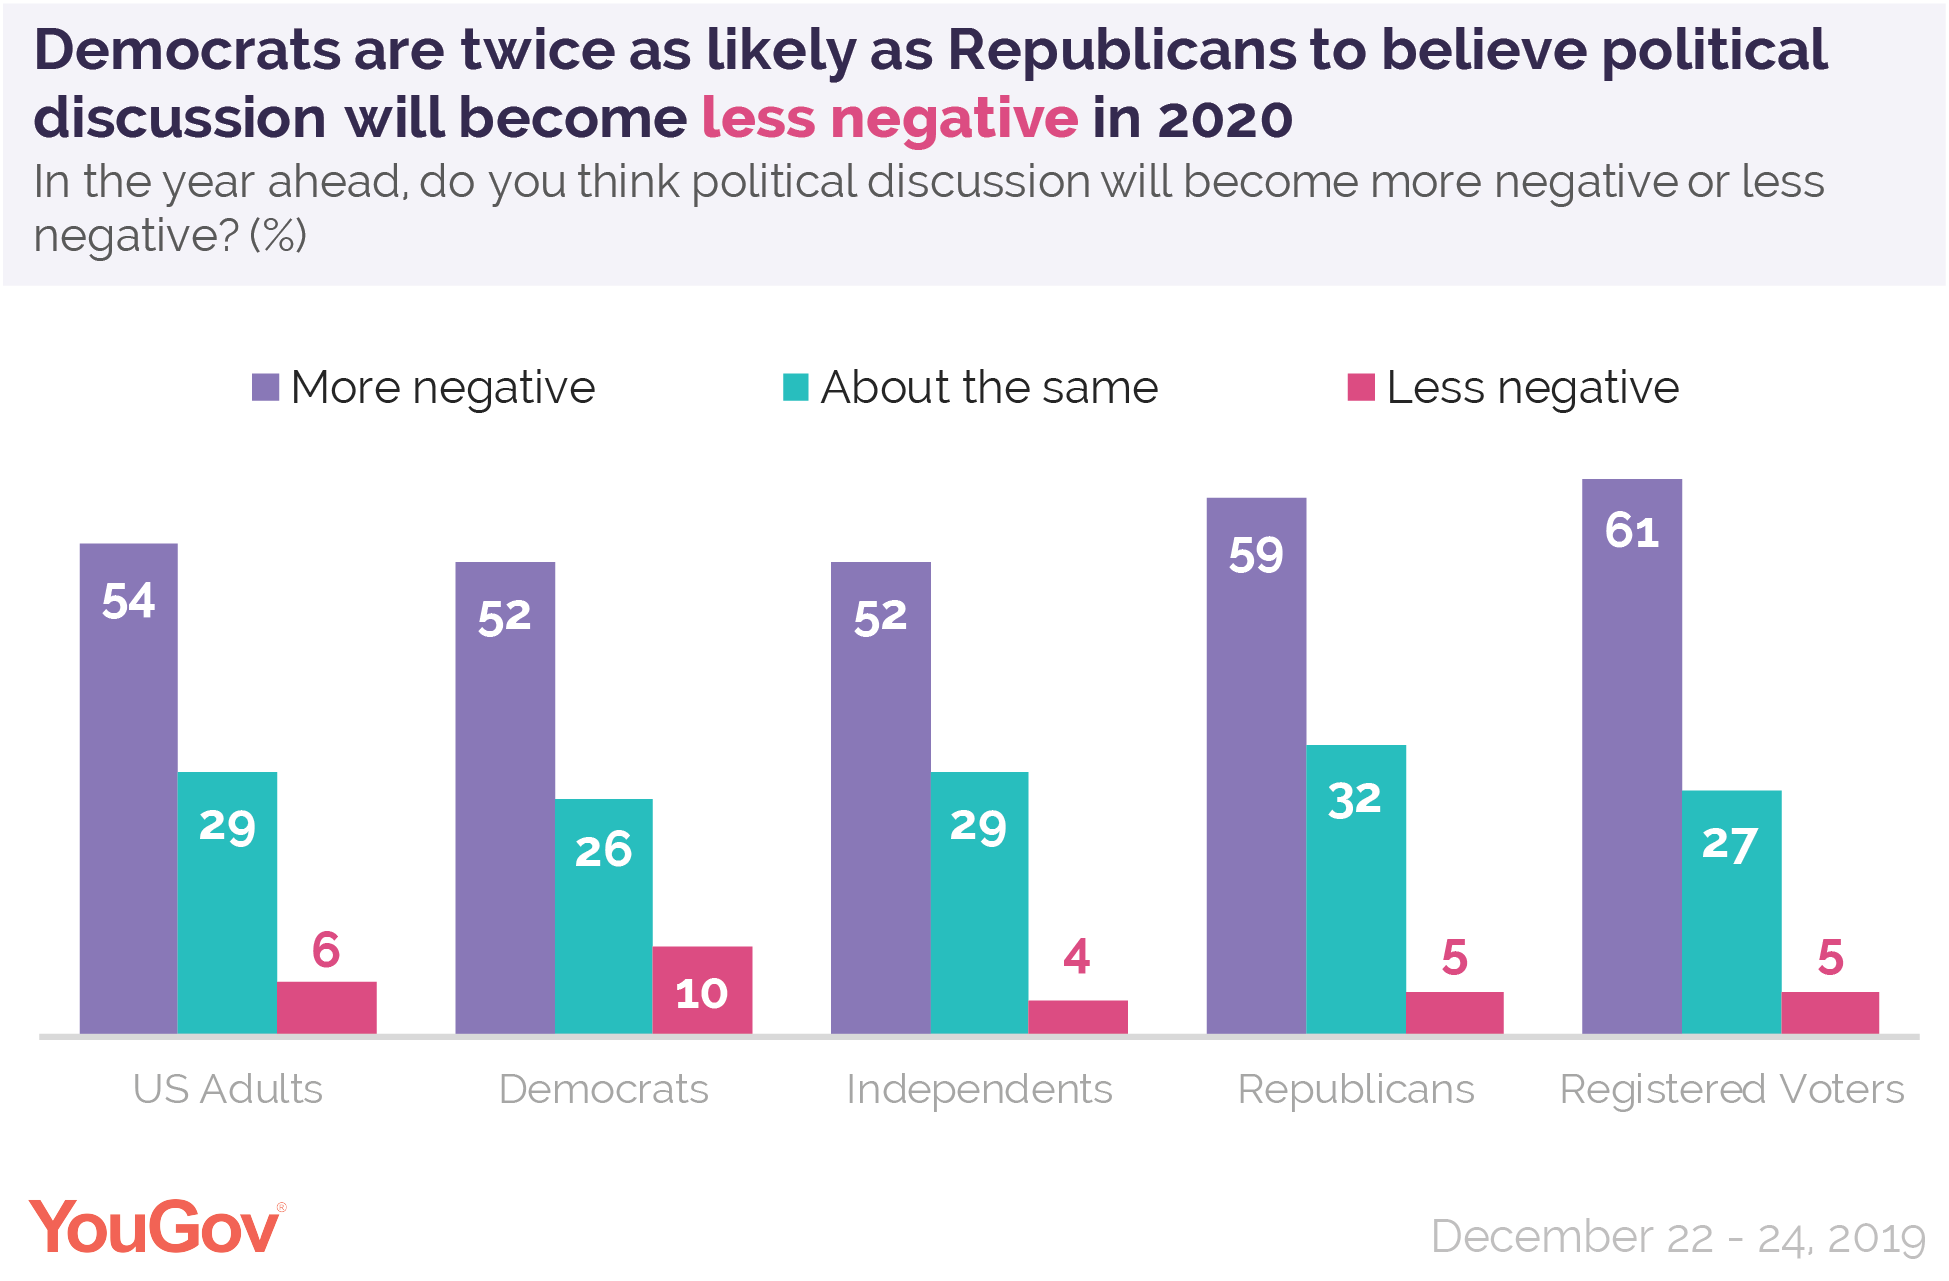 Democrats are twice as likely as Republicans to believe political discussion will become less negative in 2020